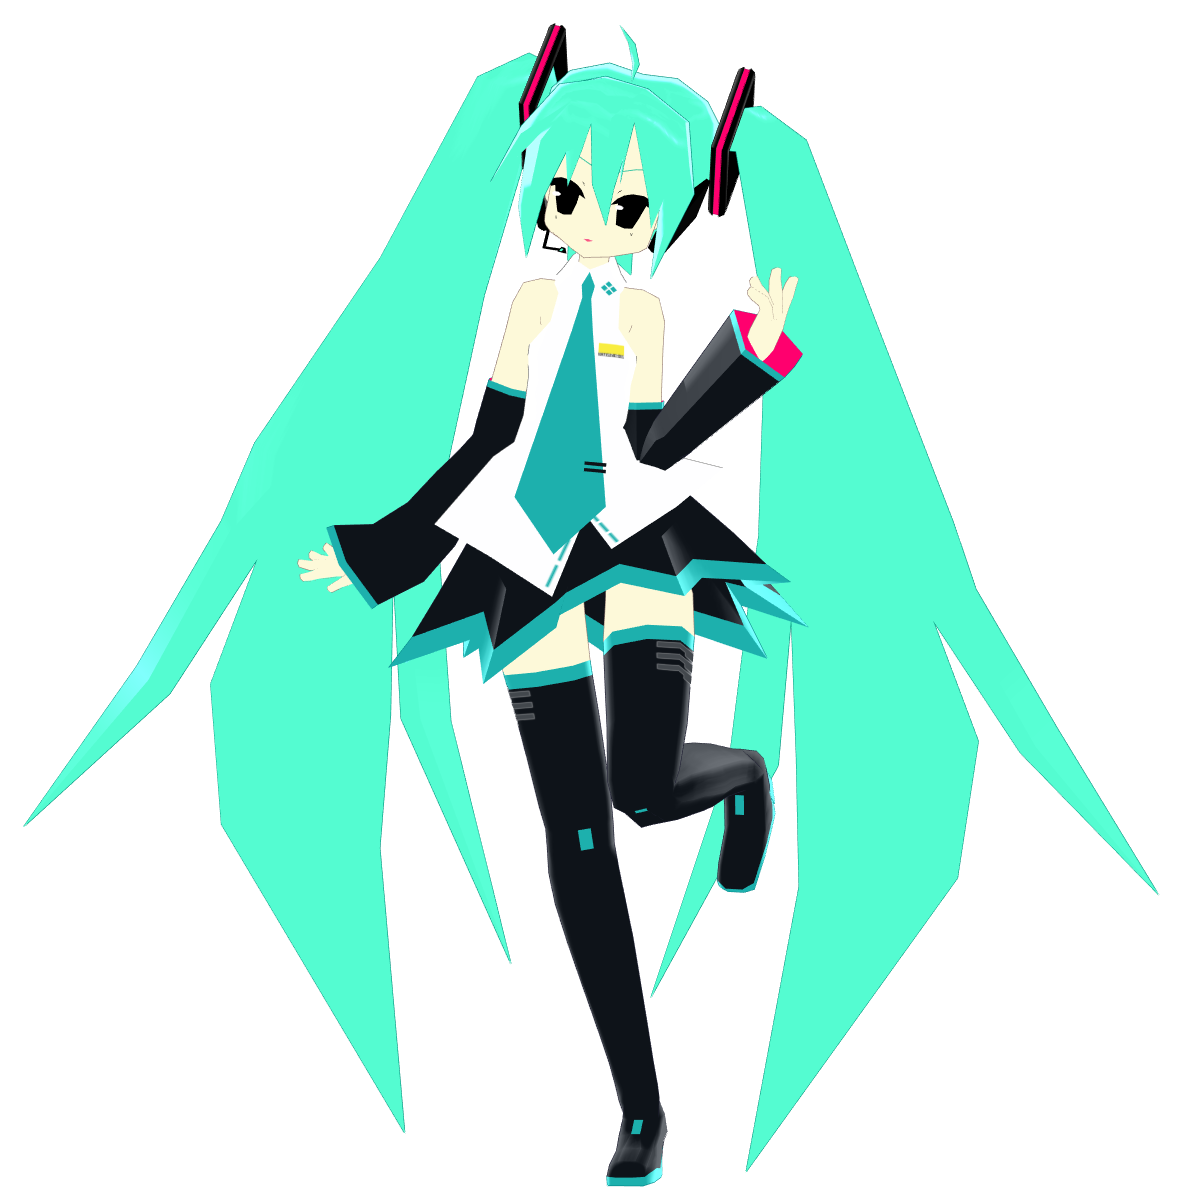 MMDownload: Jay-Jay-Edits PS1 Miku 2